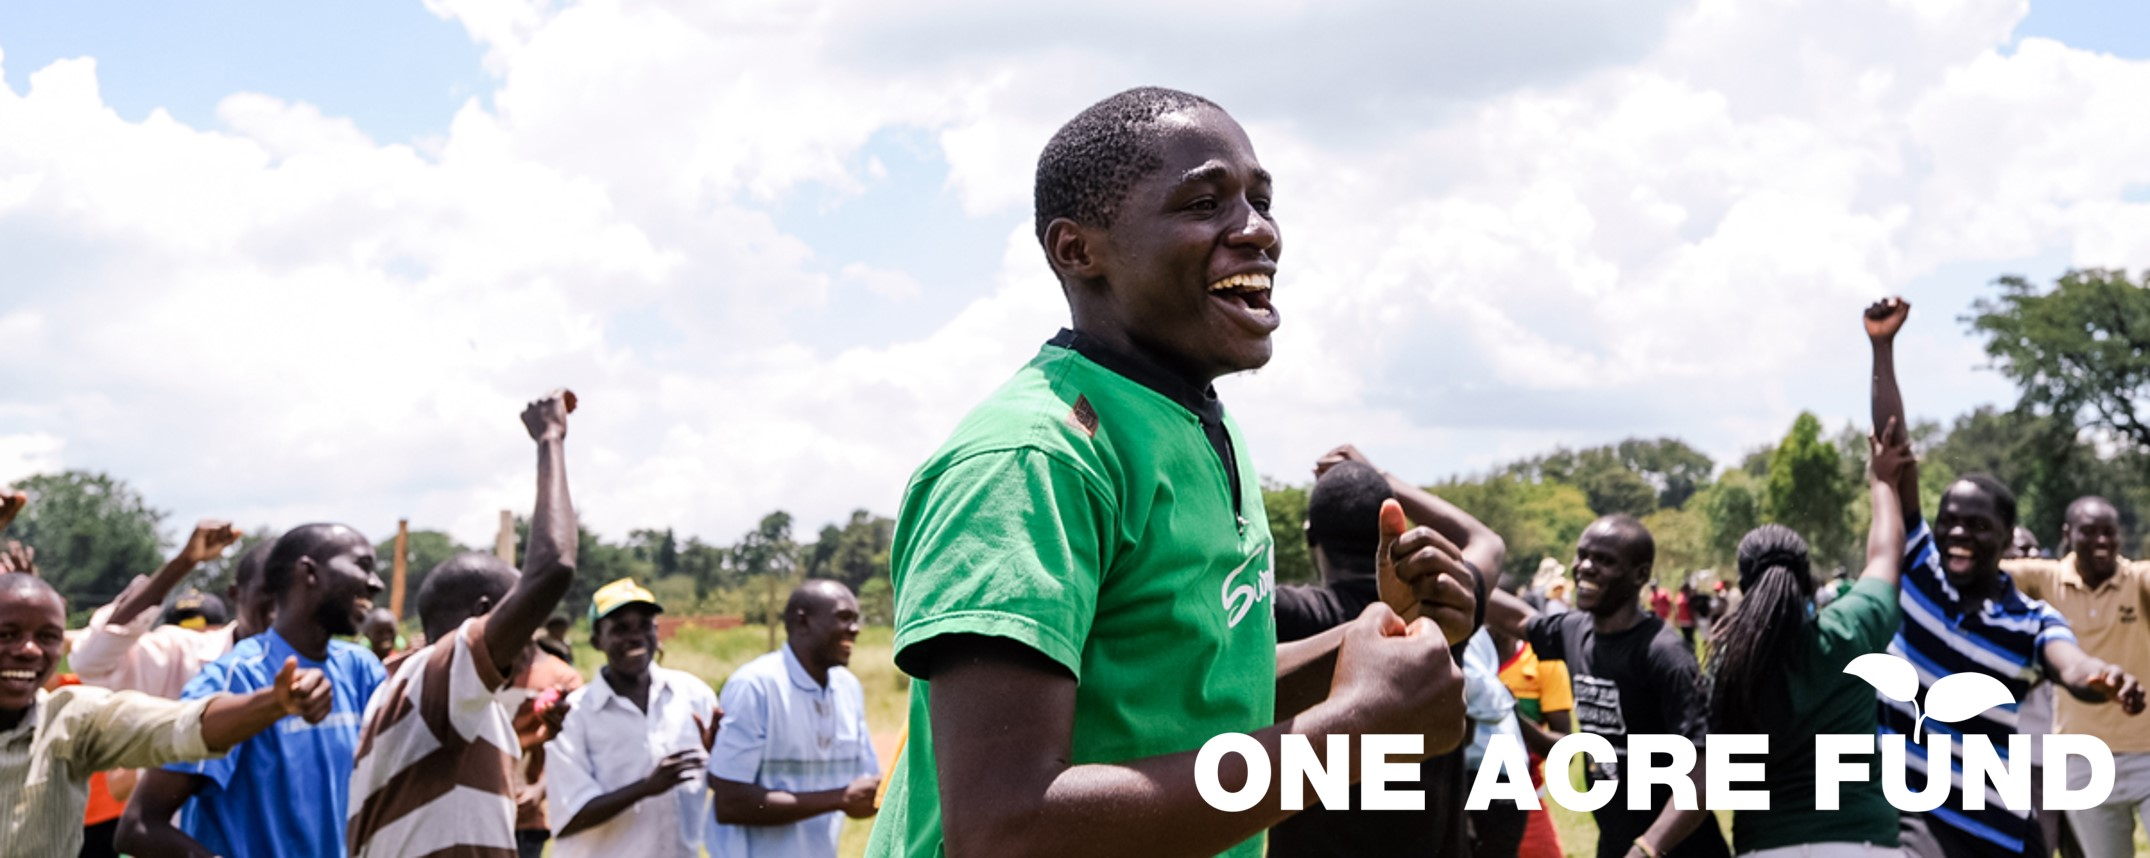 One Acre Fund - Global Leadership Opportunity Movemeback African opportunity cover image